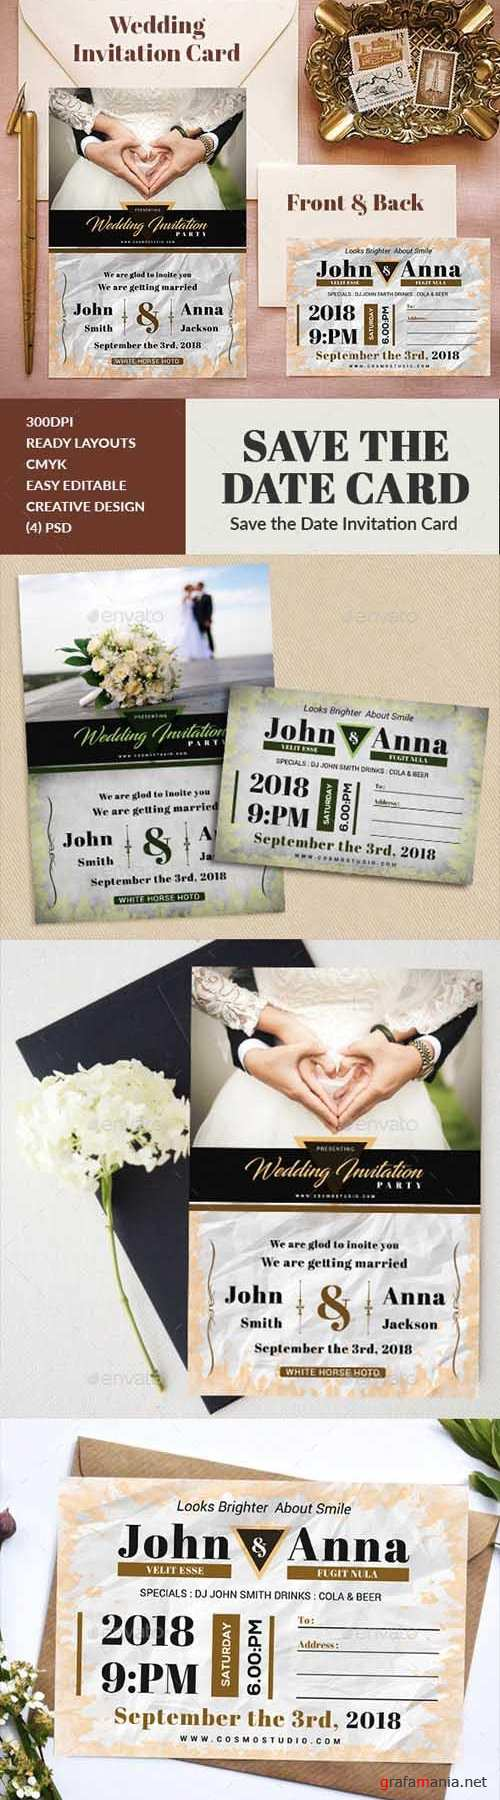 Wedding Invitation 20414567